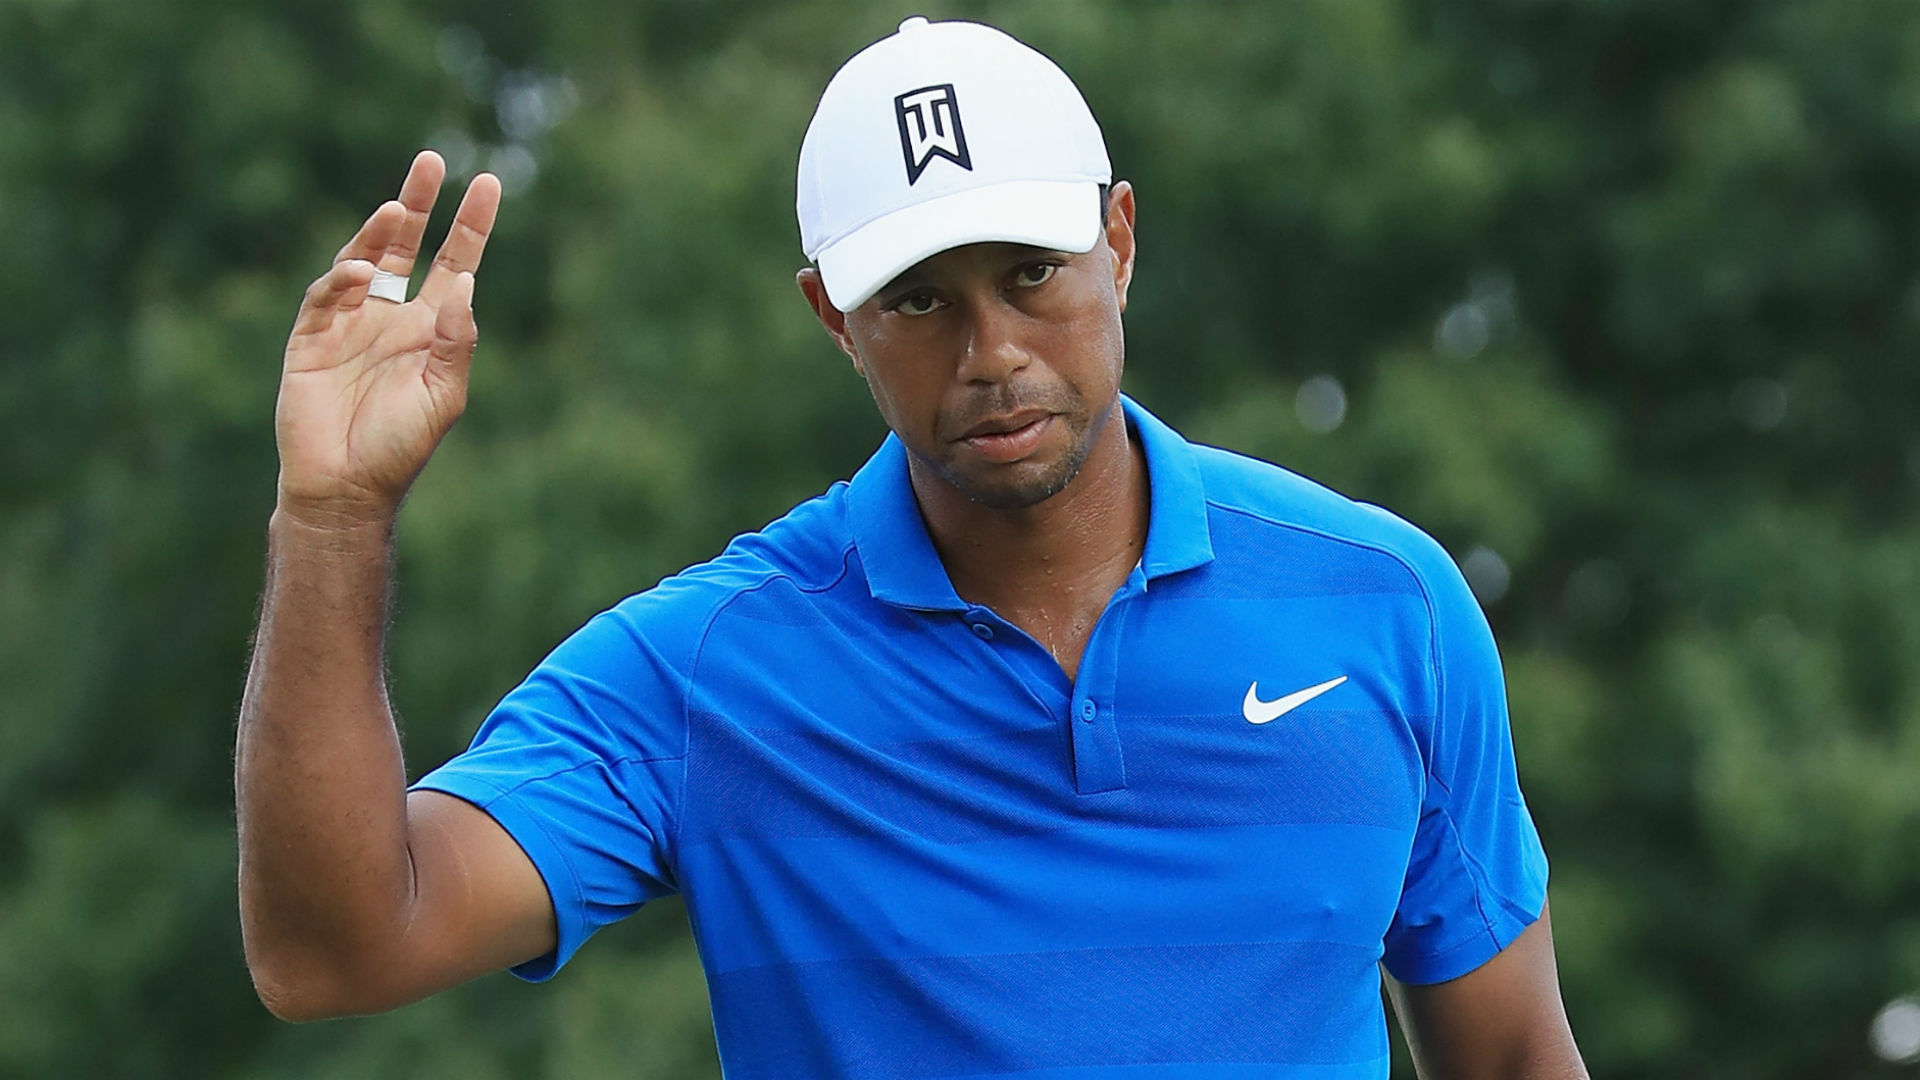 'Tigermania' breaks out as massive crowd salutes Tiger Woods